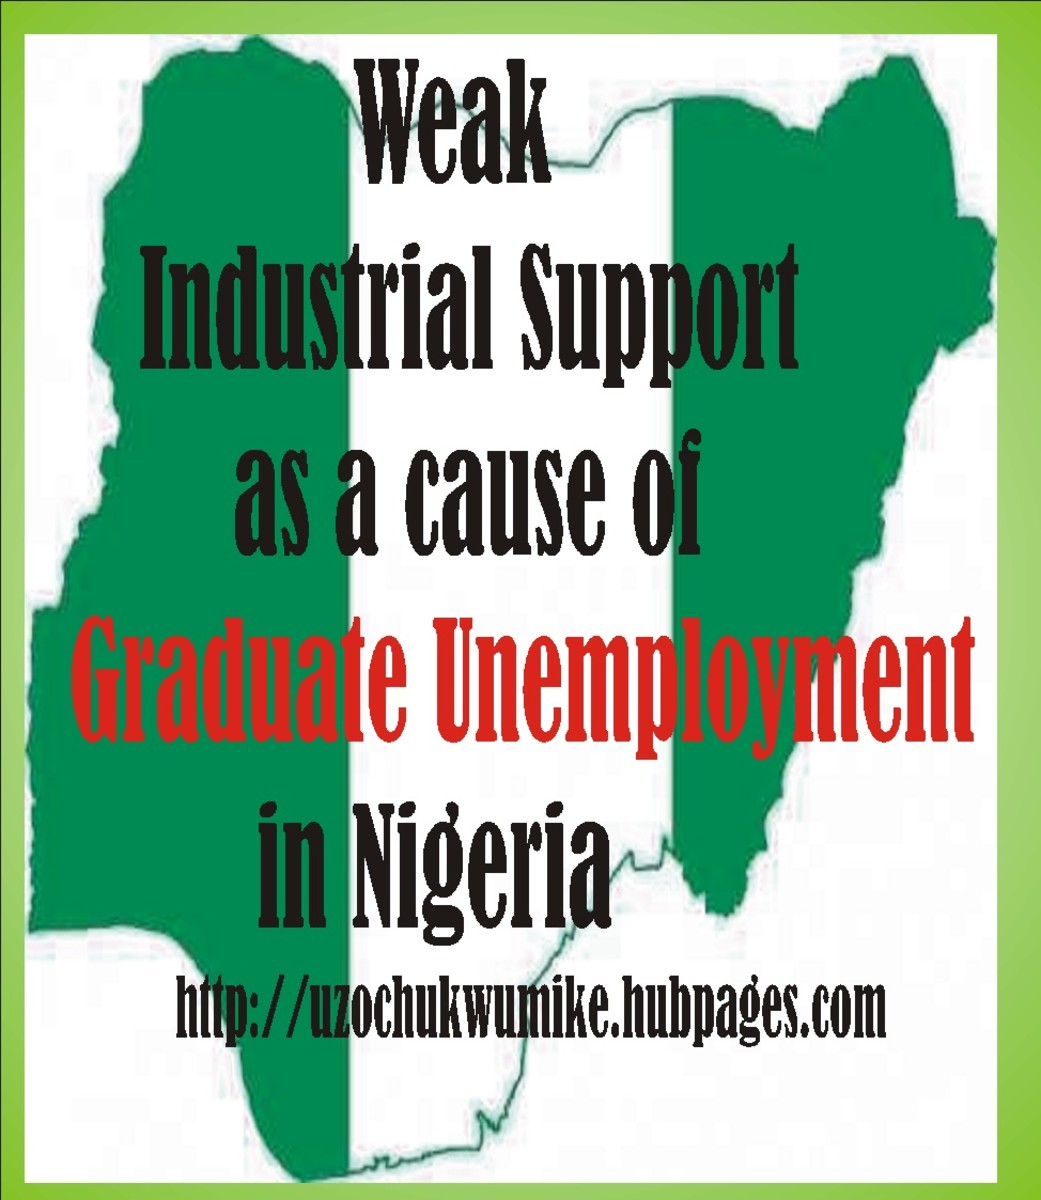 Weak industrial support as a cause of graduate unemployment in Nigeria. Many manufacturing companies in Nigeria do not support the students during their industrial trainings.